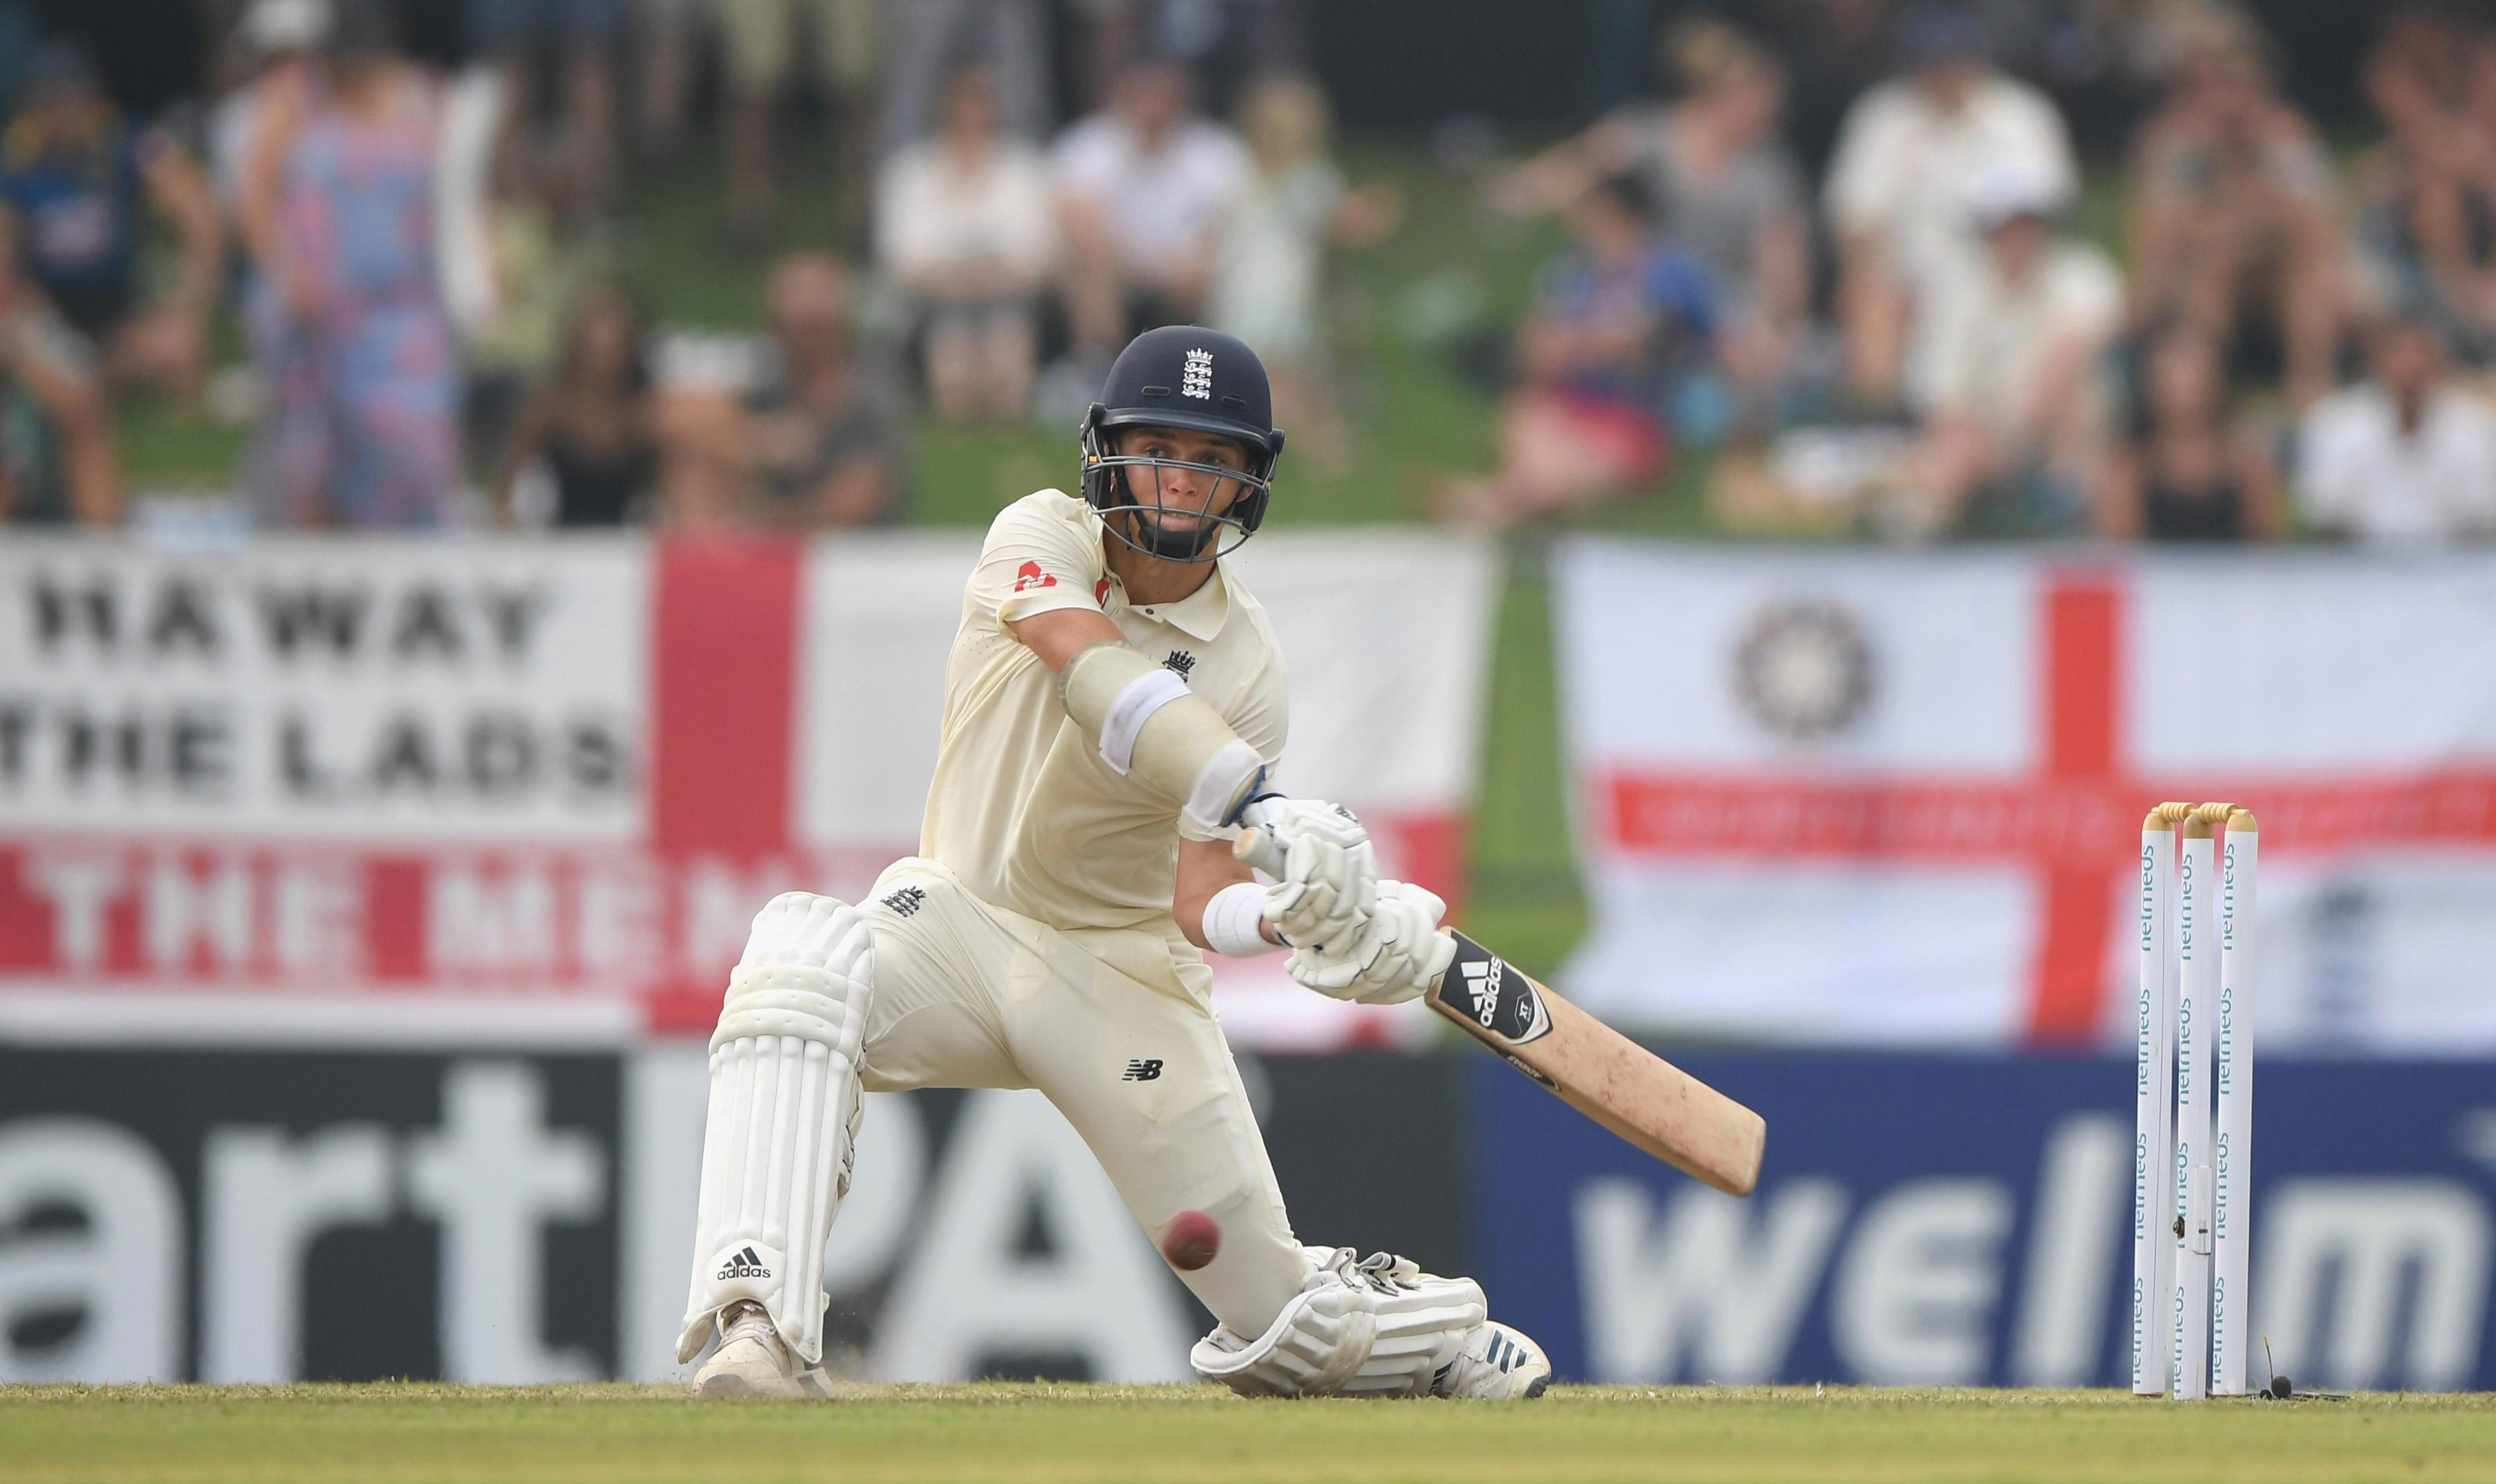 Sam Curran changed England's innings in Kandy with a brilliant 64